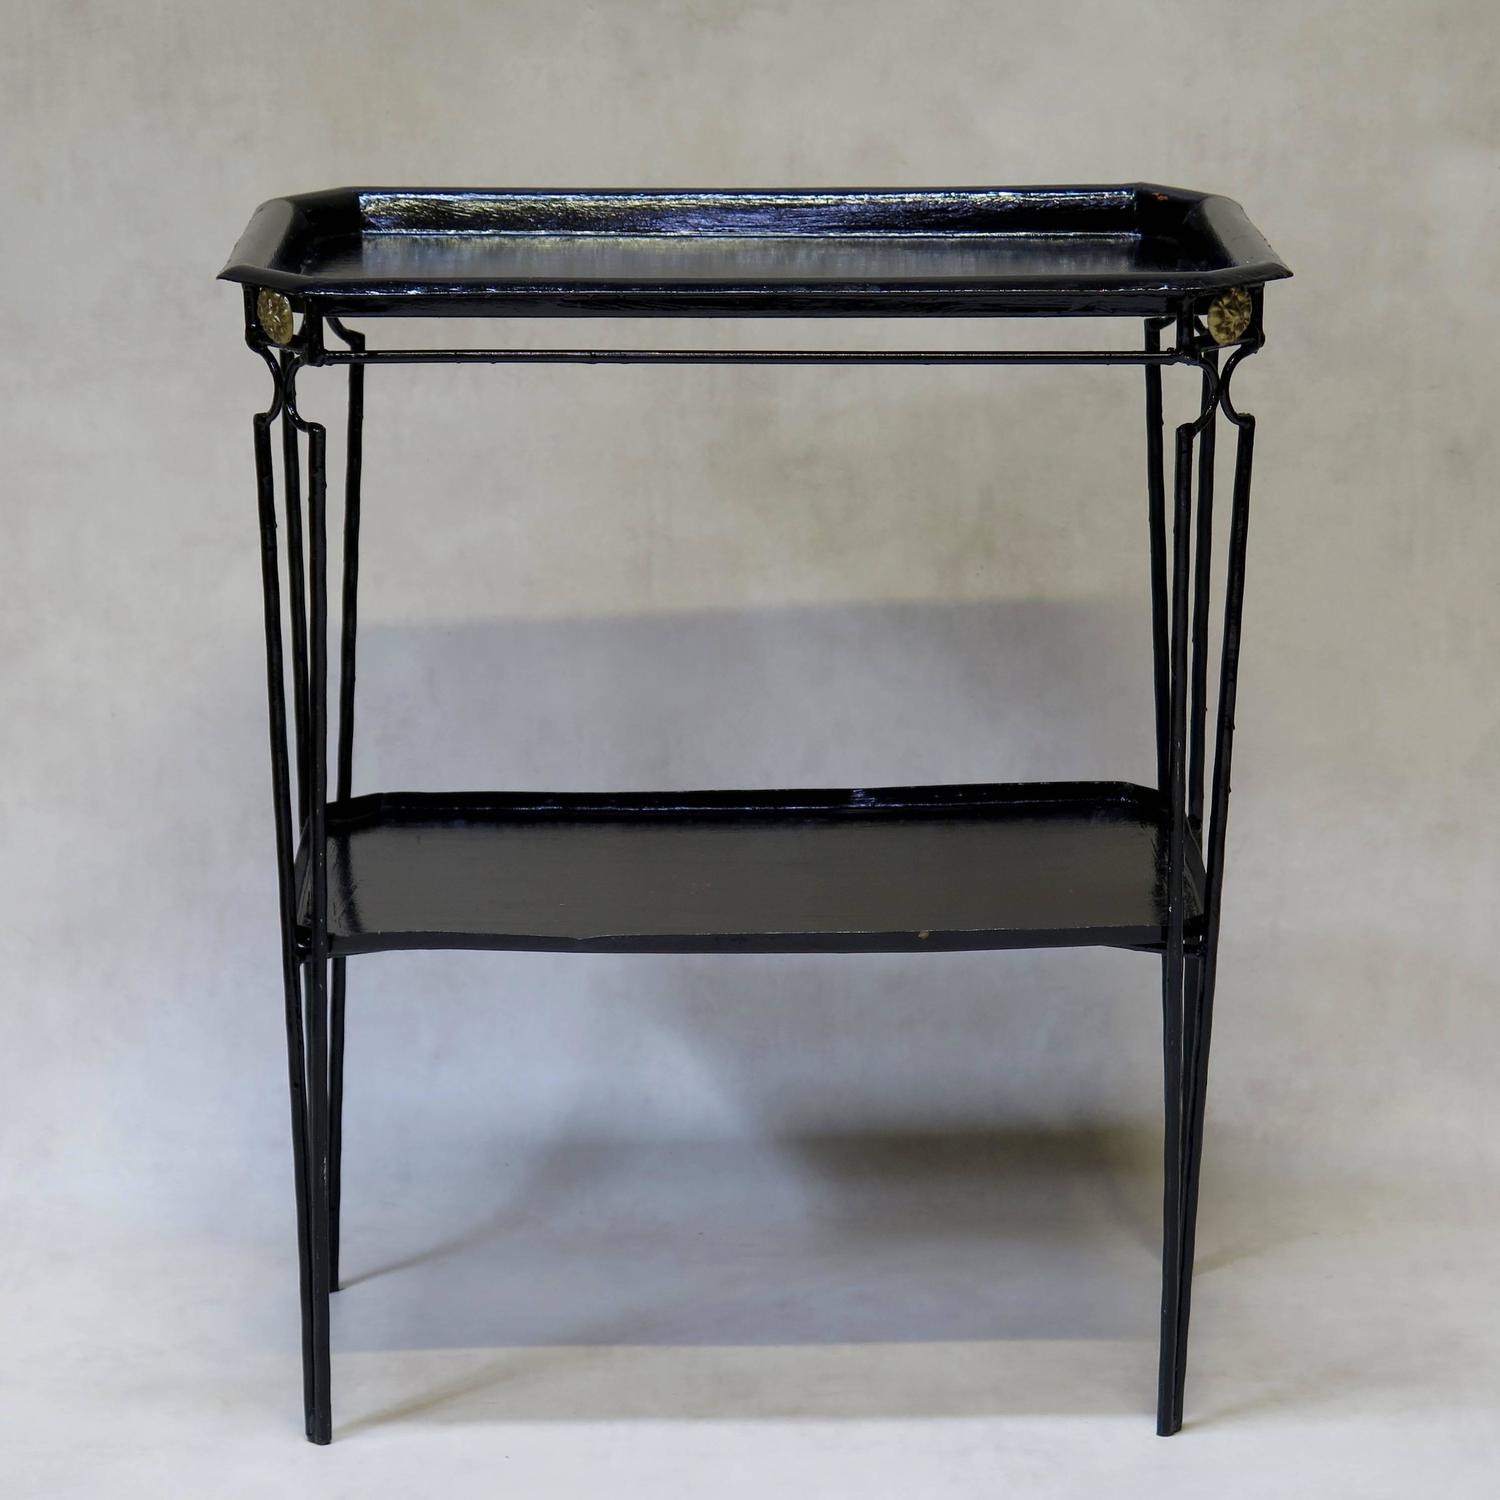 Four Black Painted Metal Tray Tables in the 1940s Style, France, circa ...